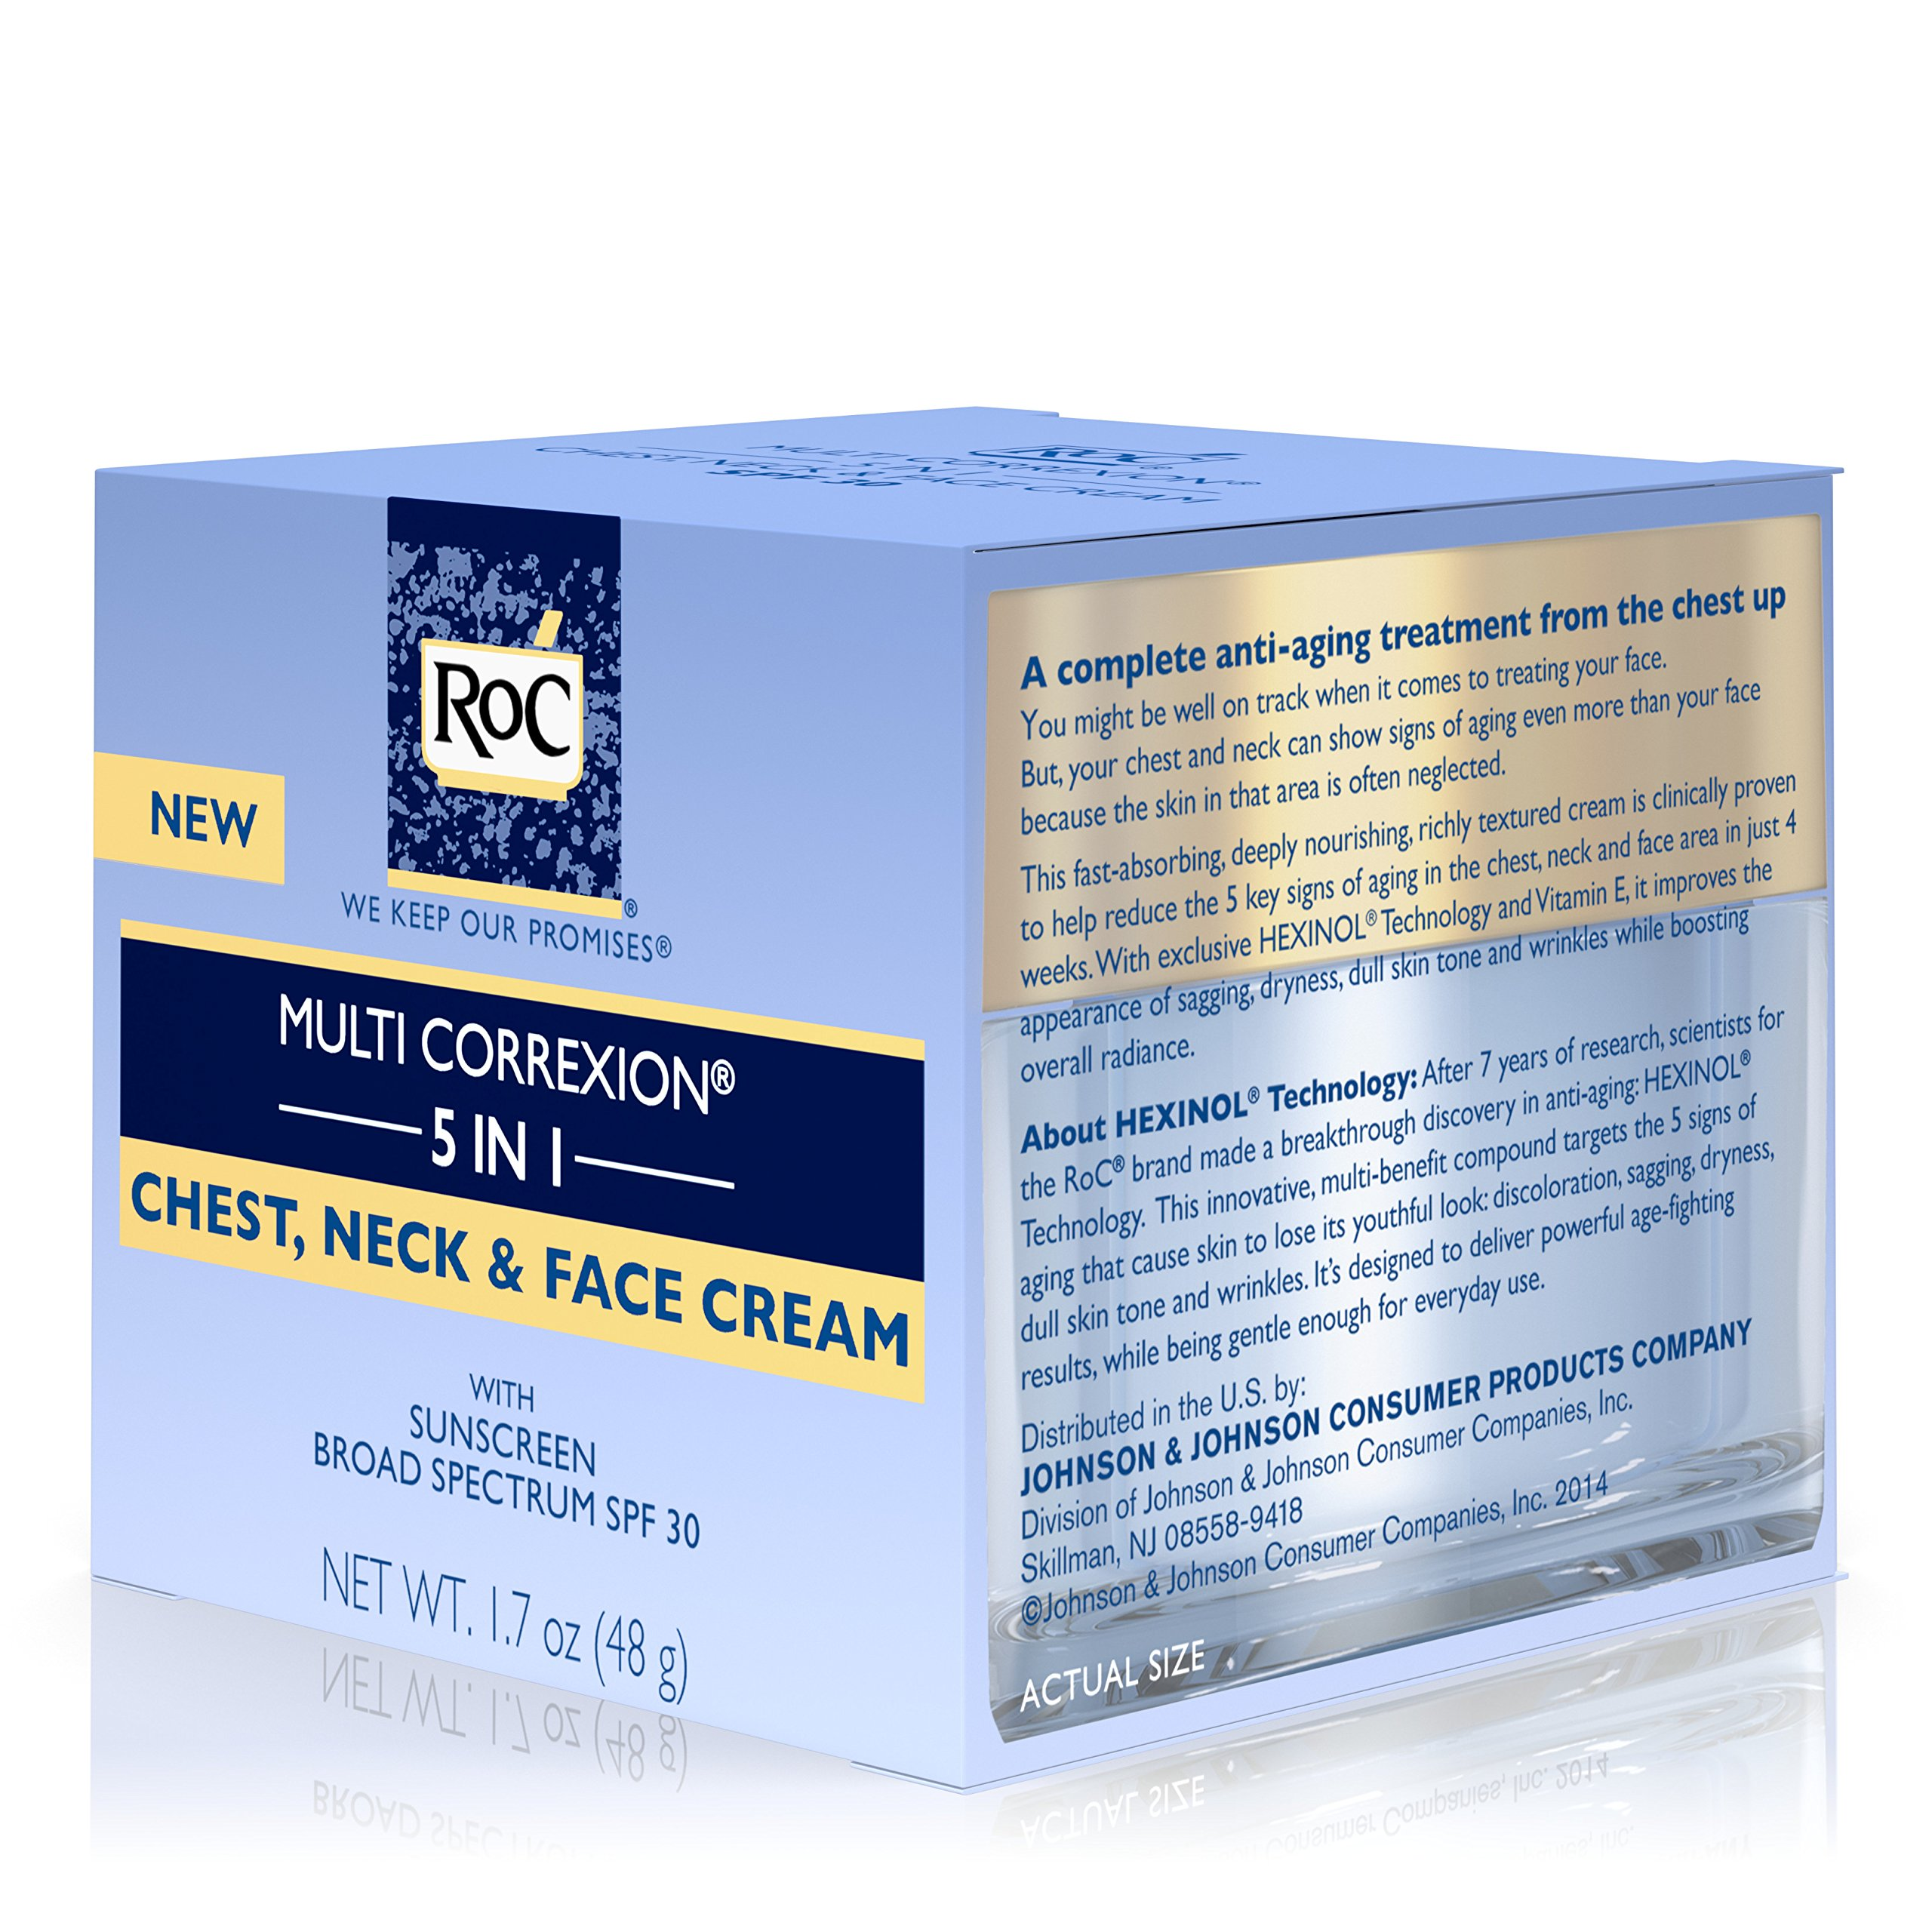 RoC Multi Correxion 5 in 1 Anti-Aging Chest, Neck and Face Cream with SPF 30, Moisturizing Cream Made with Vitamin E, 1.7 oz by RoC (Image #6)